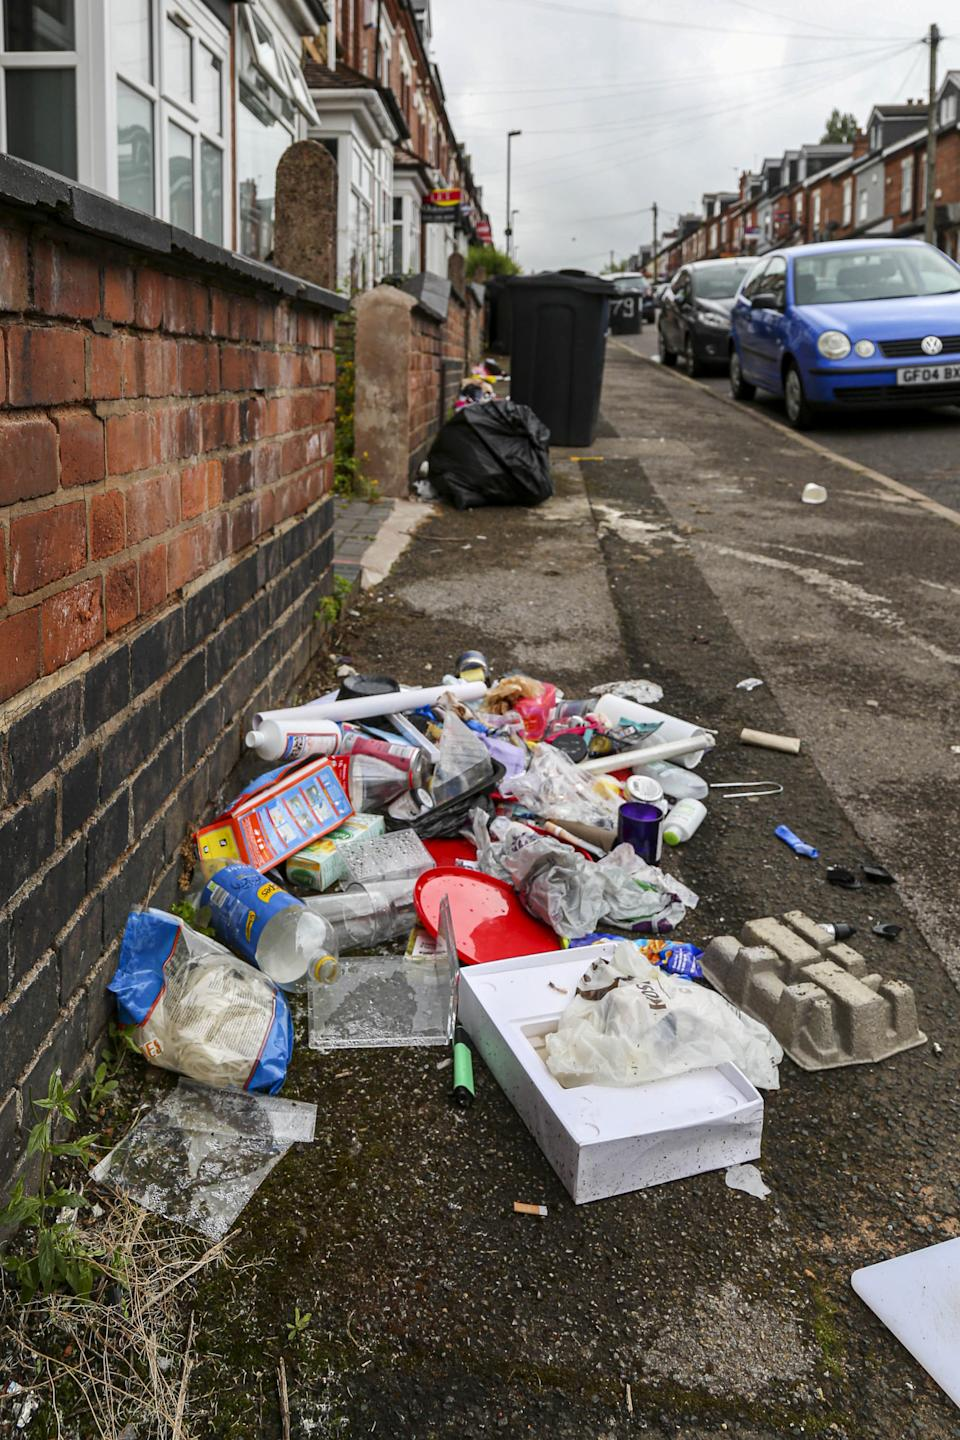 Rubbish was strewn across the streets. (SWNS)